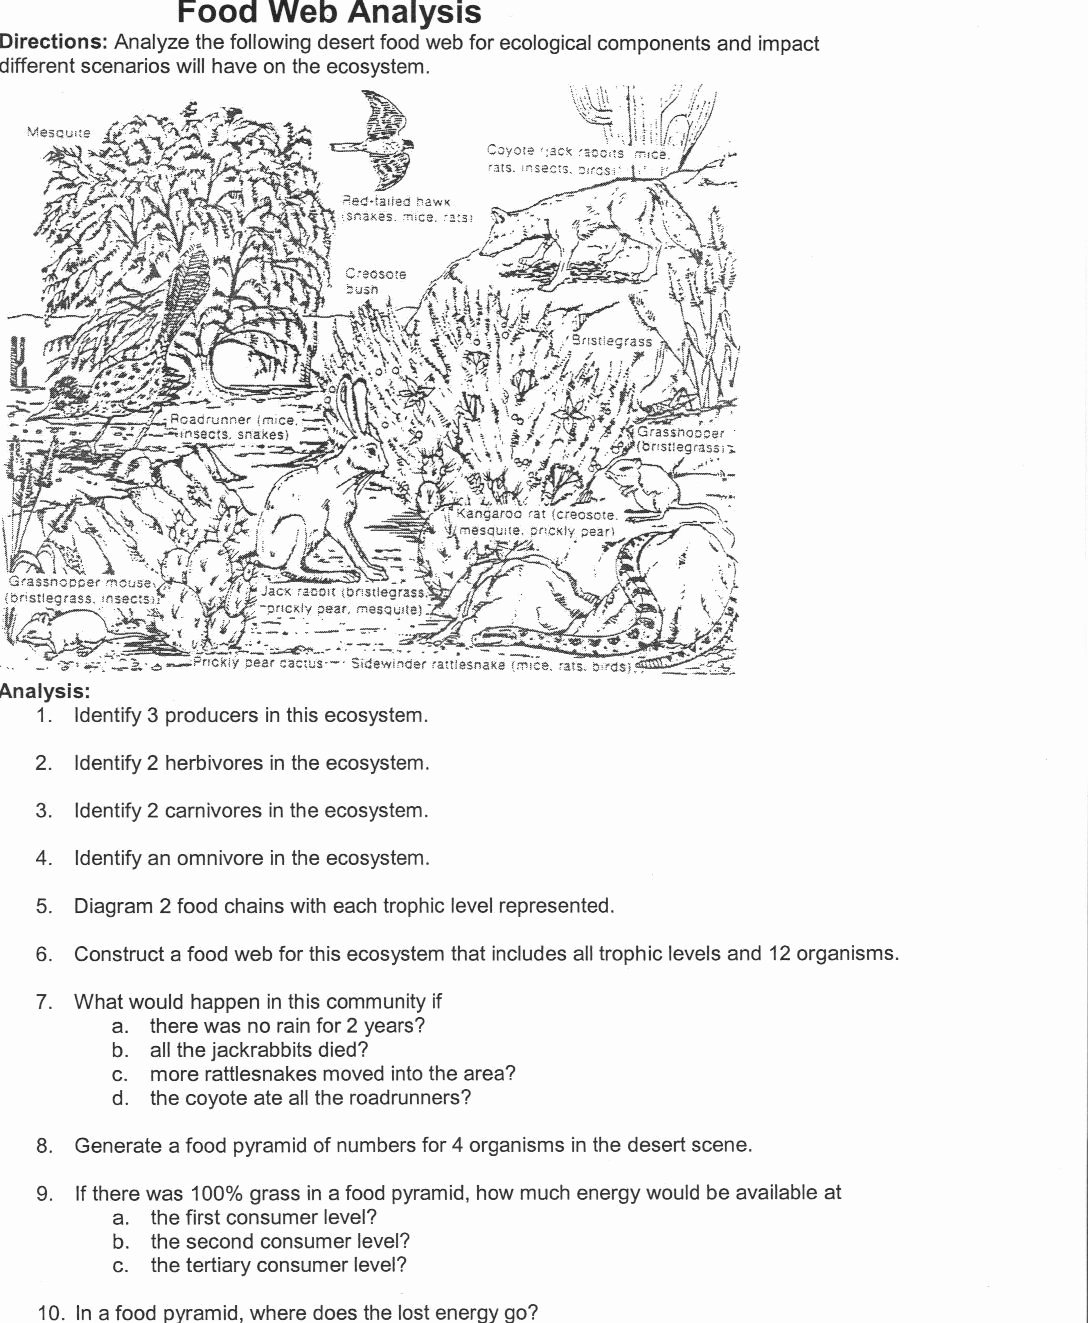 Food Web Worksheet High School Luxury Klimttreeoflife Resume Site